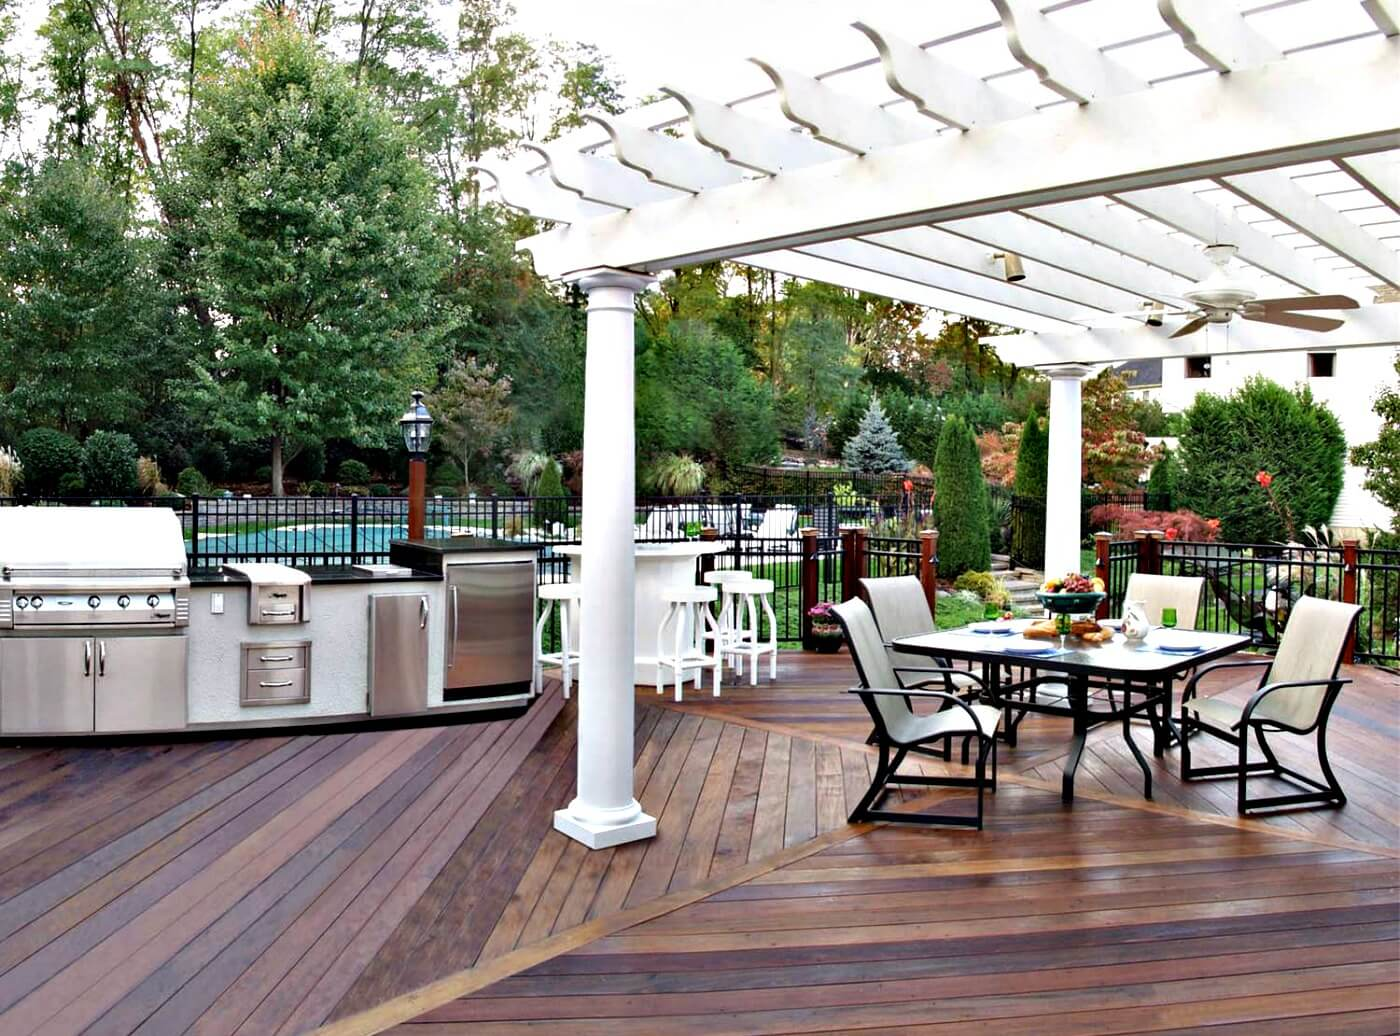 Custom deck with pergola and outdoor kitchen